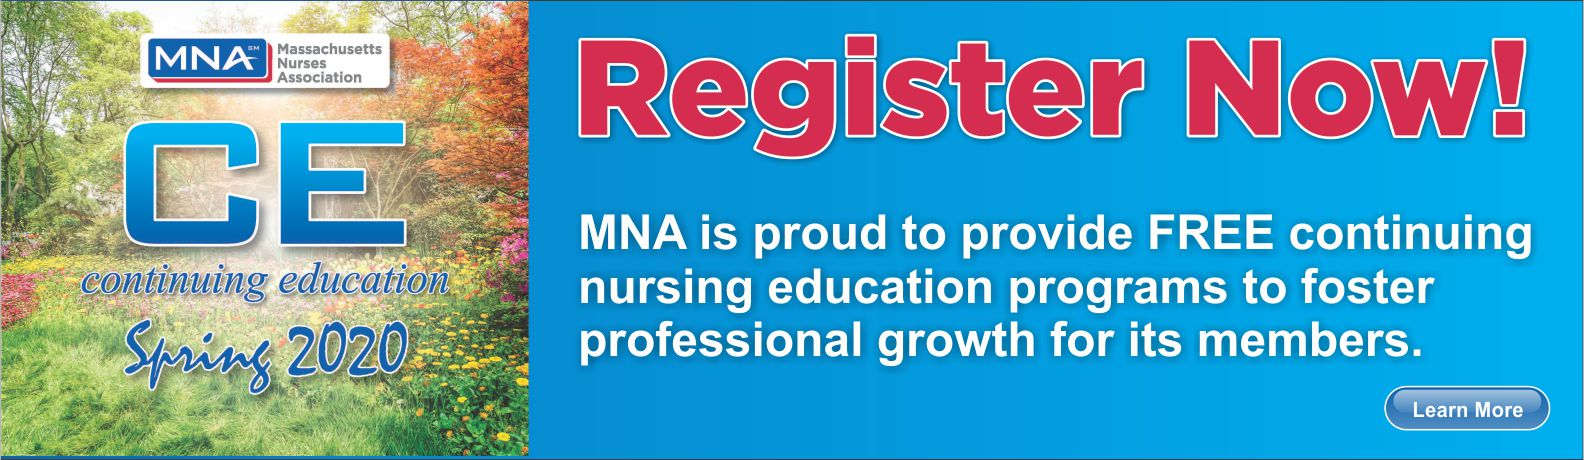 Register for MNA Continuing Education, Spring 2020.